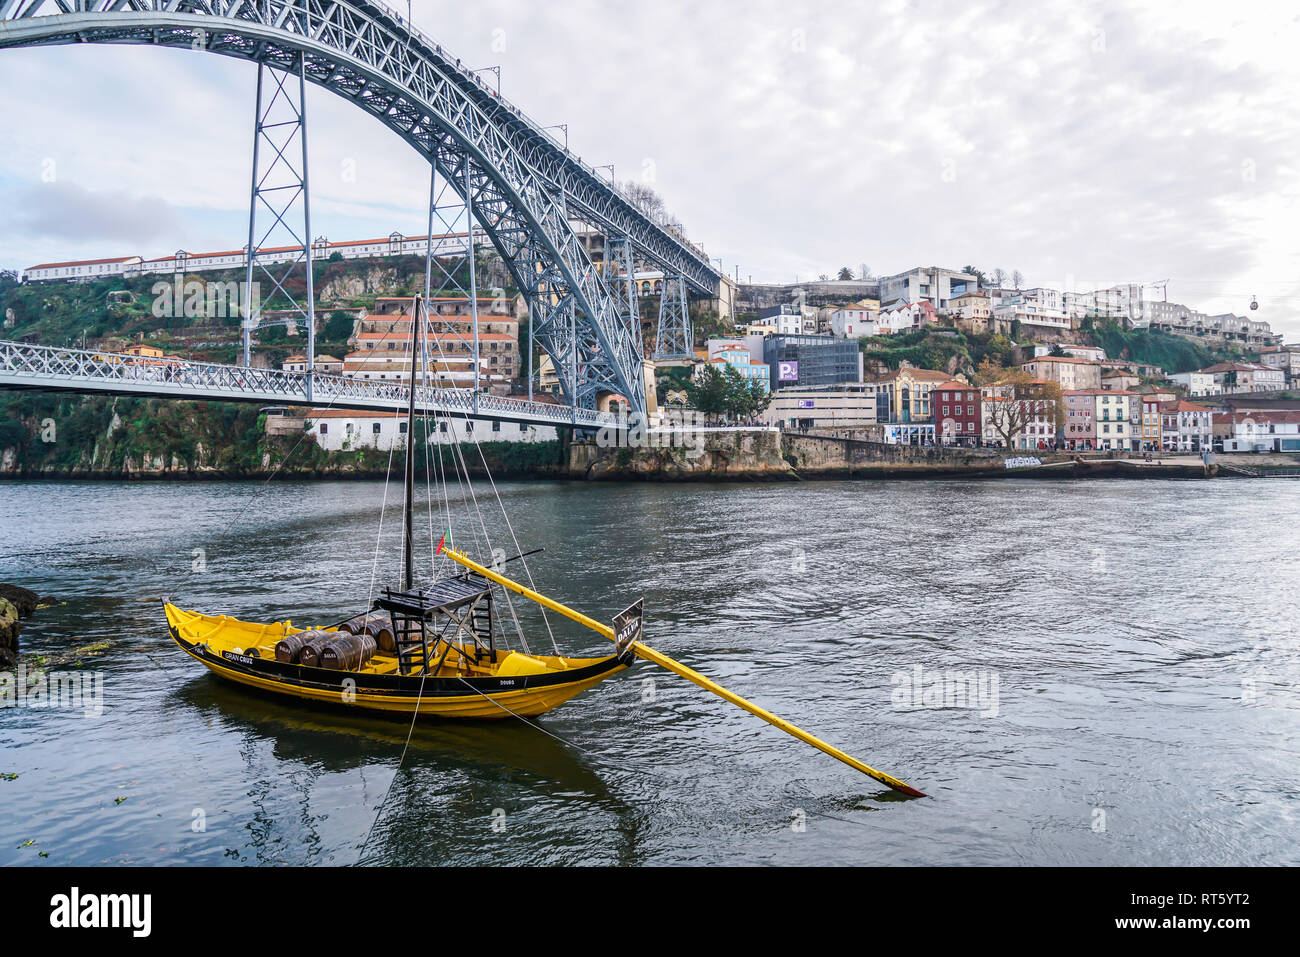 Porto, Portugal - December 2018: Yellow Rabelo Boat transporting port wine, in Douro River with Luis I Bridge behind. Stock Photo